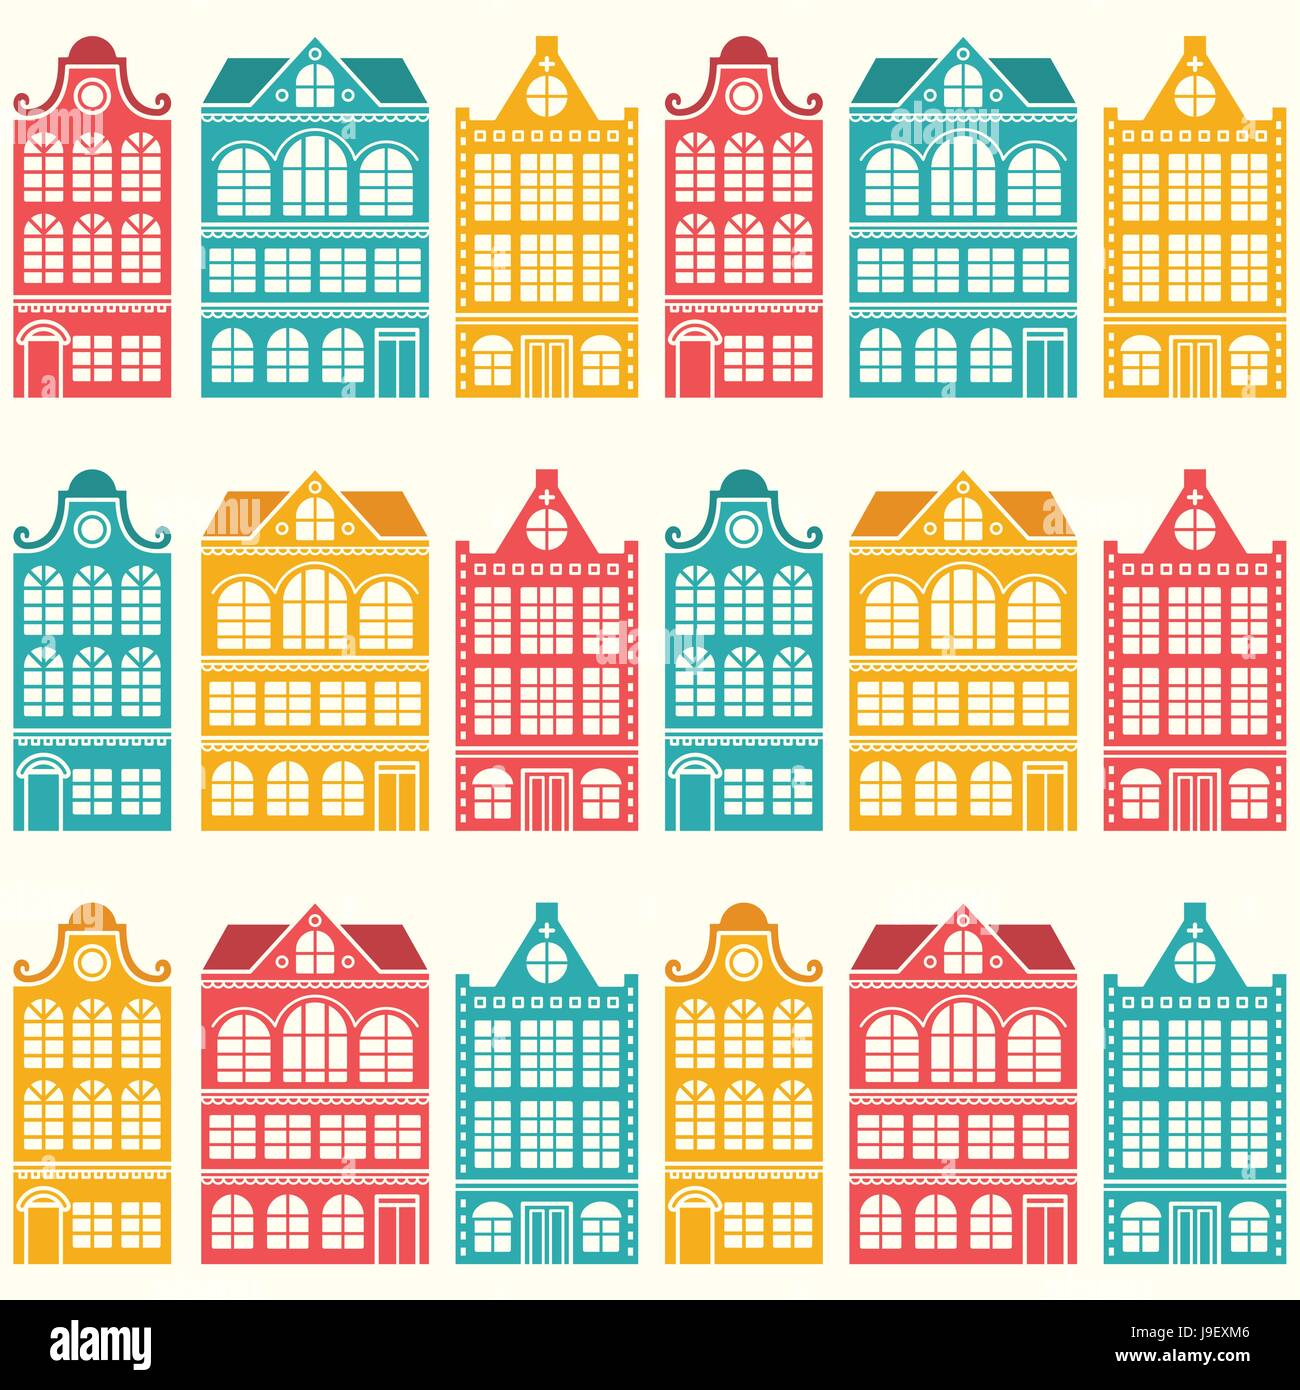 Seamless house pattern - Dutch, Amsterdam houses, mid-century modern style - Stock Image